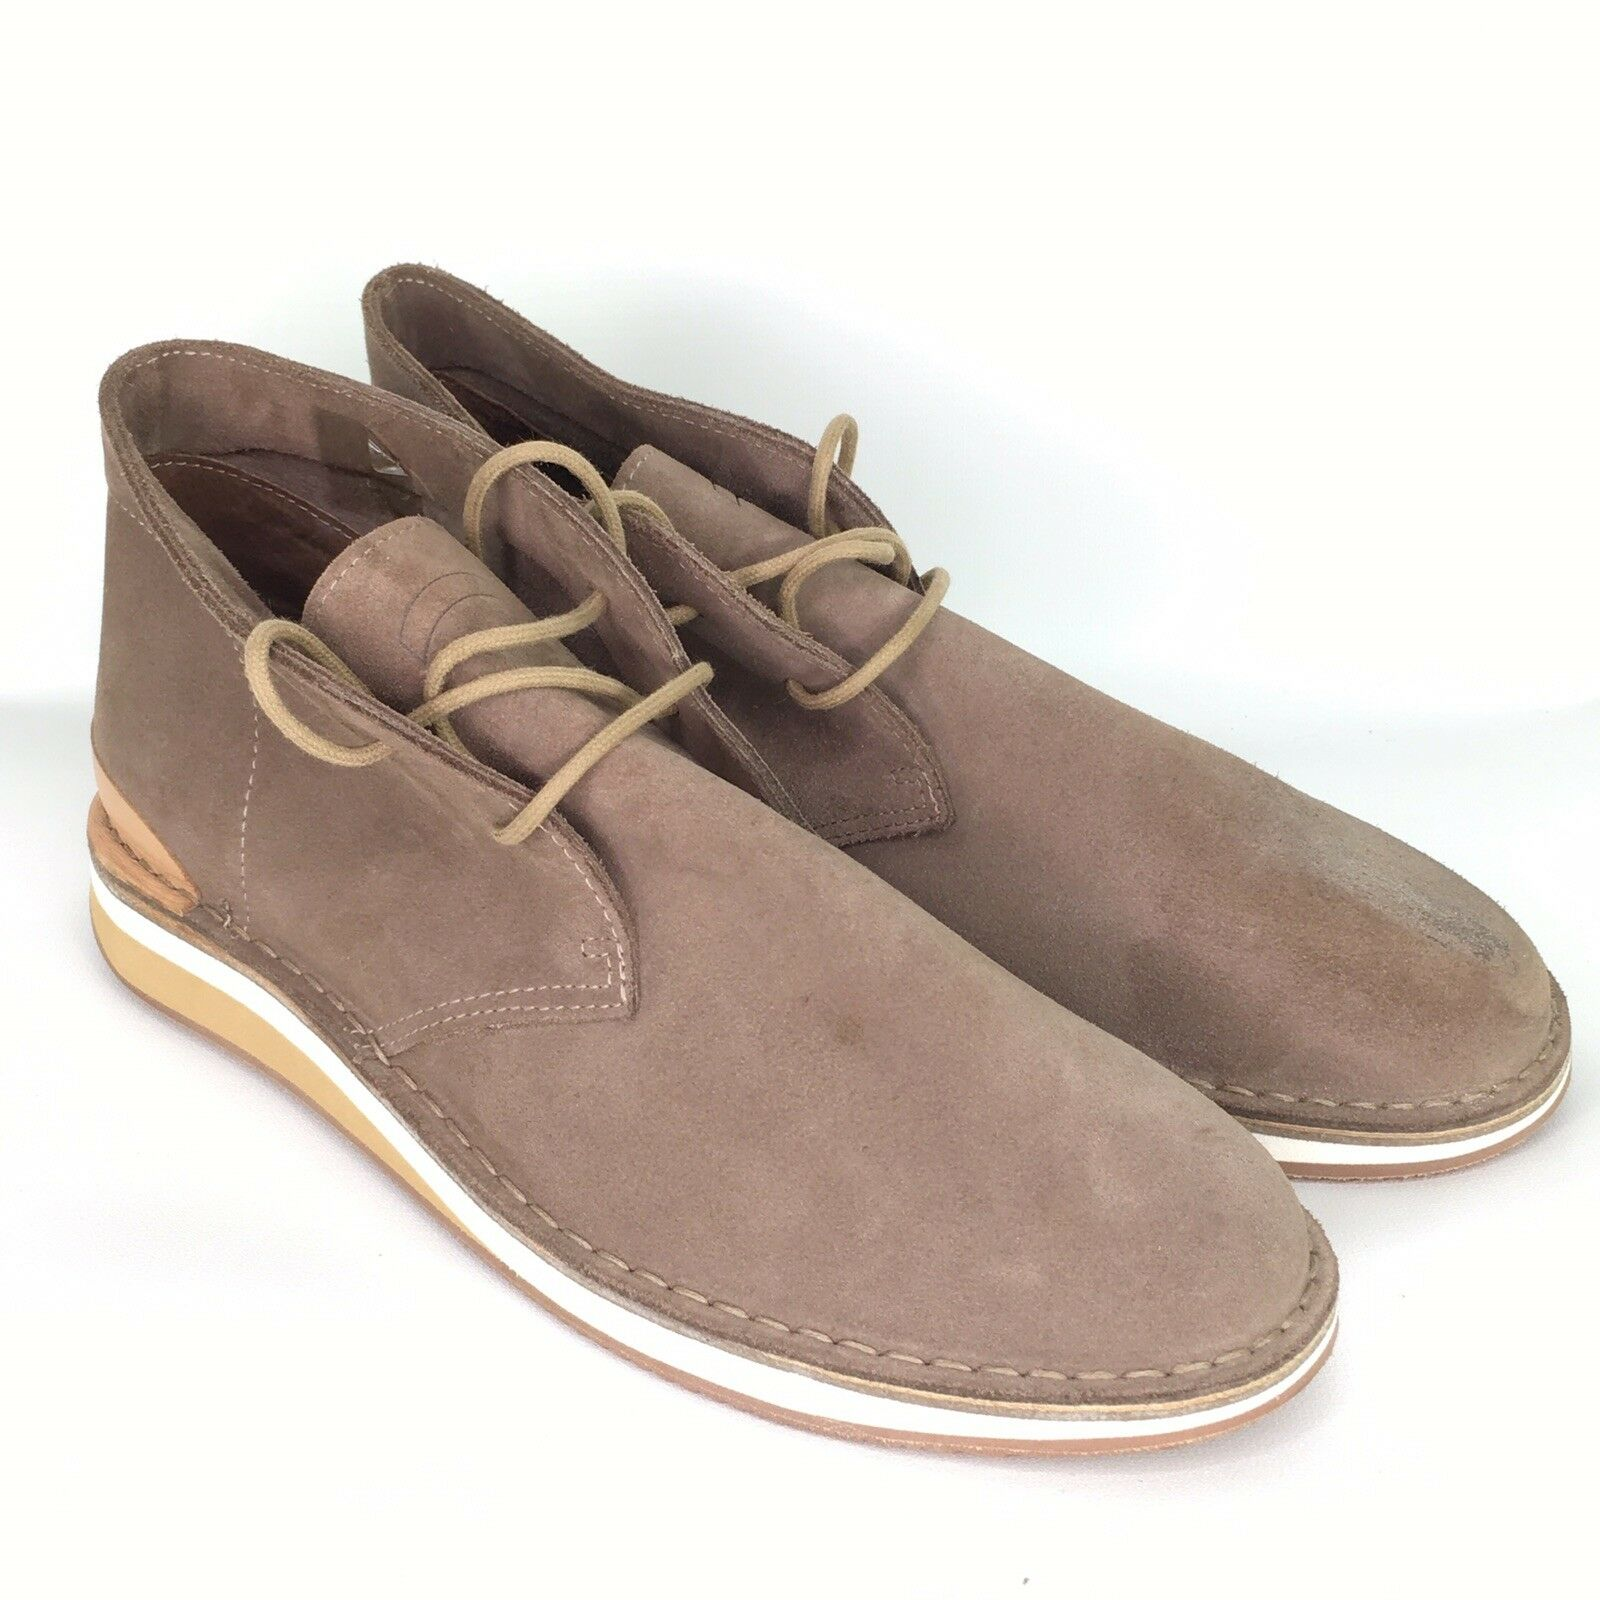 NWOT GREATS 'HIRSH' Boot shoes Tan Suede Mens US Size 11.5 Made in